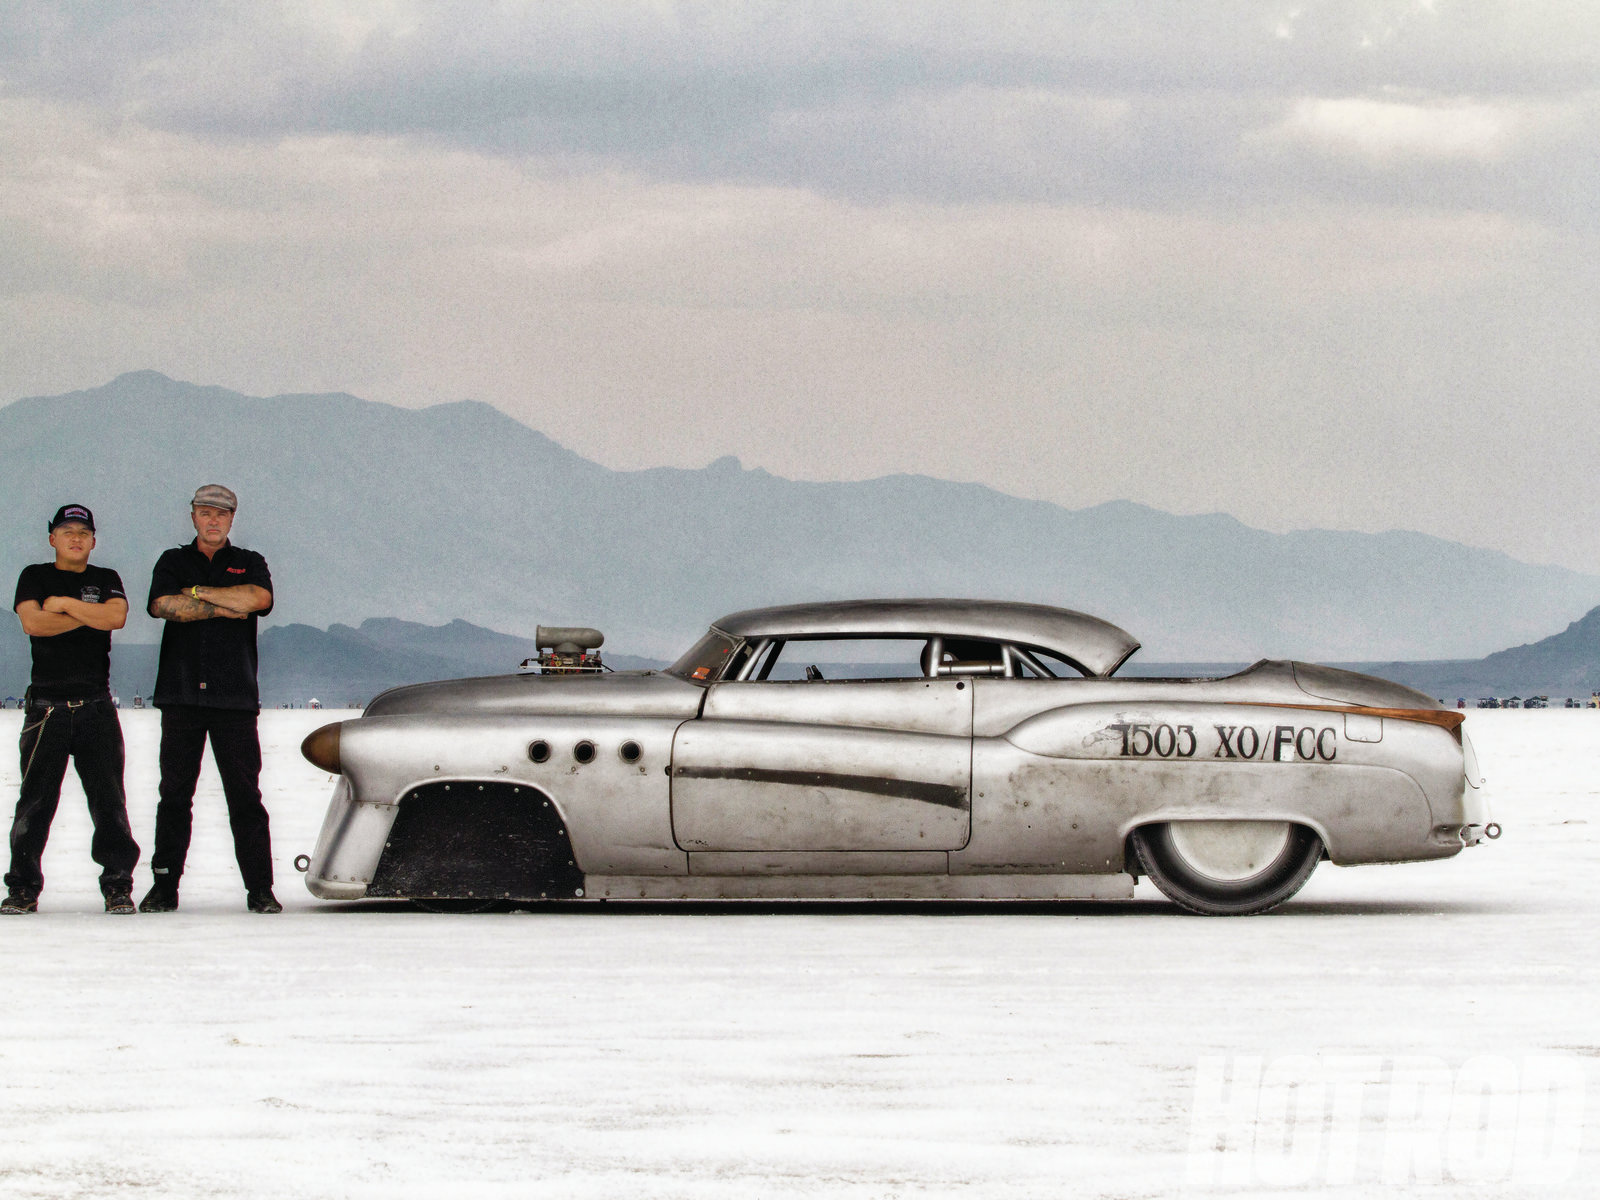 The radical 8-inch chop reduces frontal area and is key to the aerodynamic success of the large-bodied Buick. That's Sergio Juarez on the left and Jeff on the right.